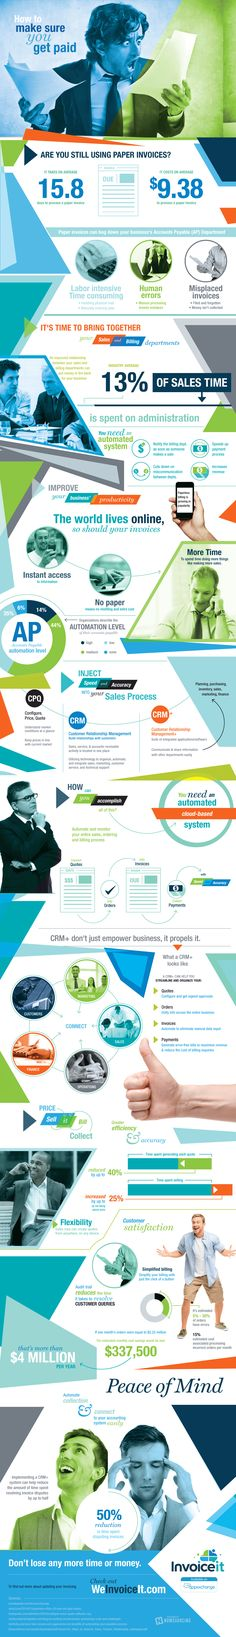 How to Make Sure You Get Paid #infographic #Business #Finance #HowTo